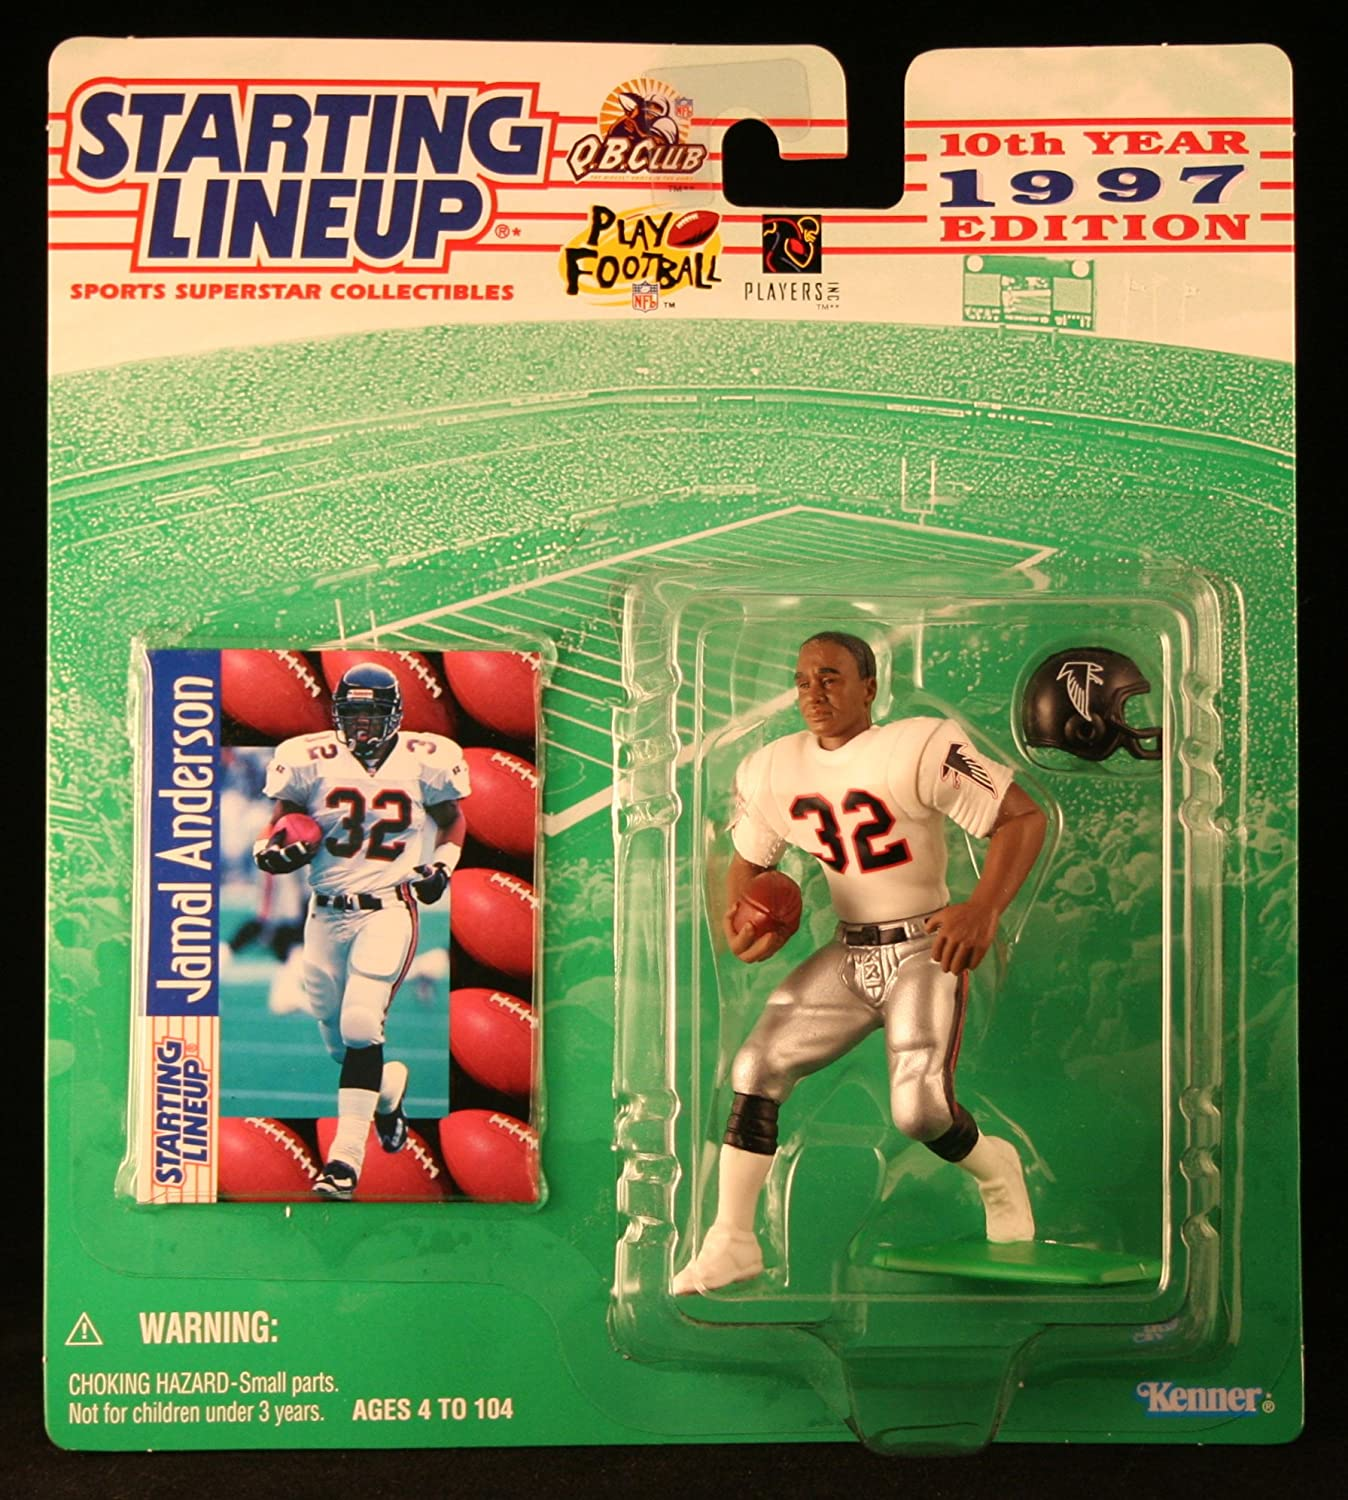 Starting Lineup JAMAL ANDERSON ATLANTA FALCONS 1997 NFL Action Figure /& Exclusive NFL Collector Trading Card